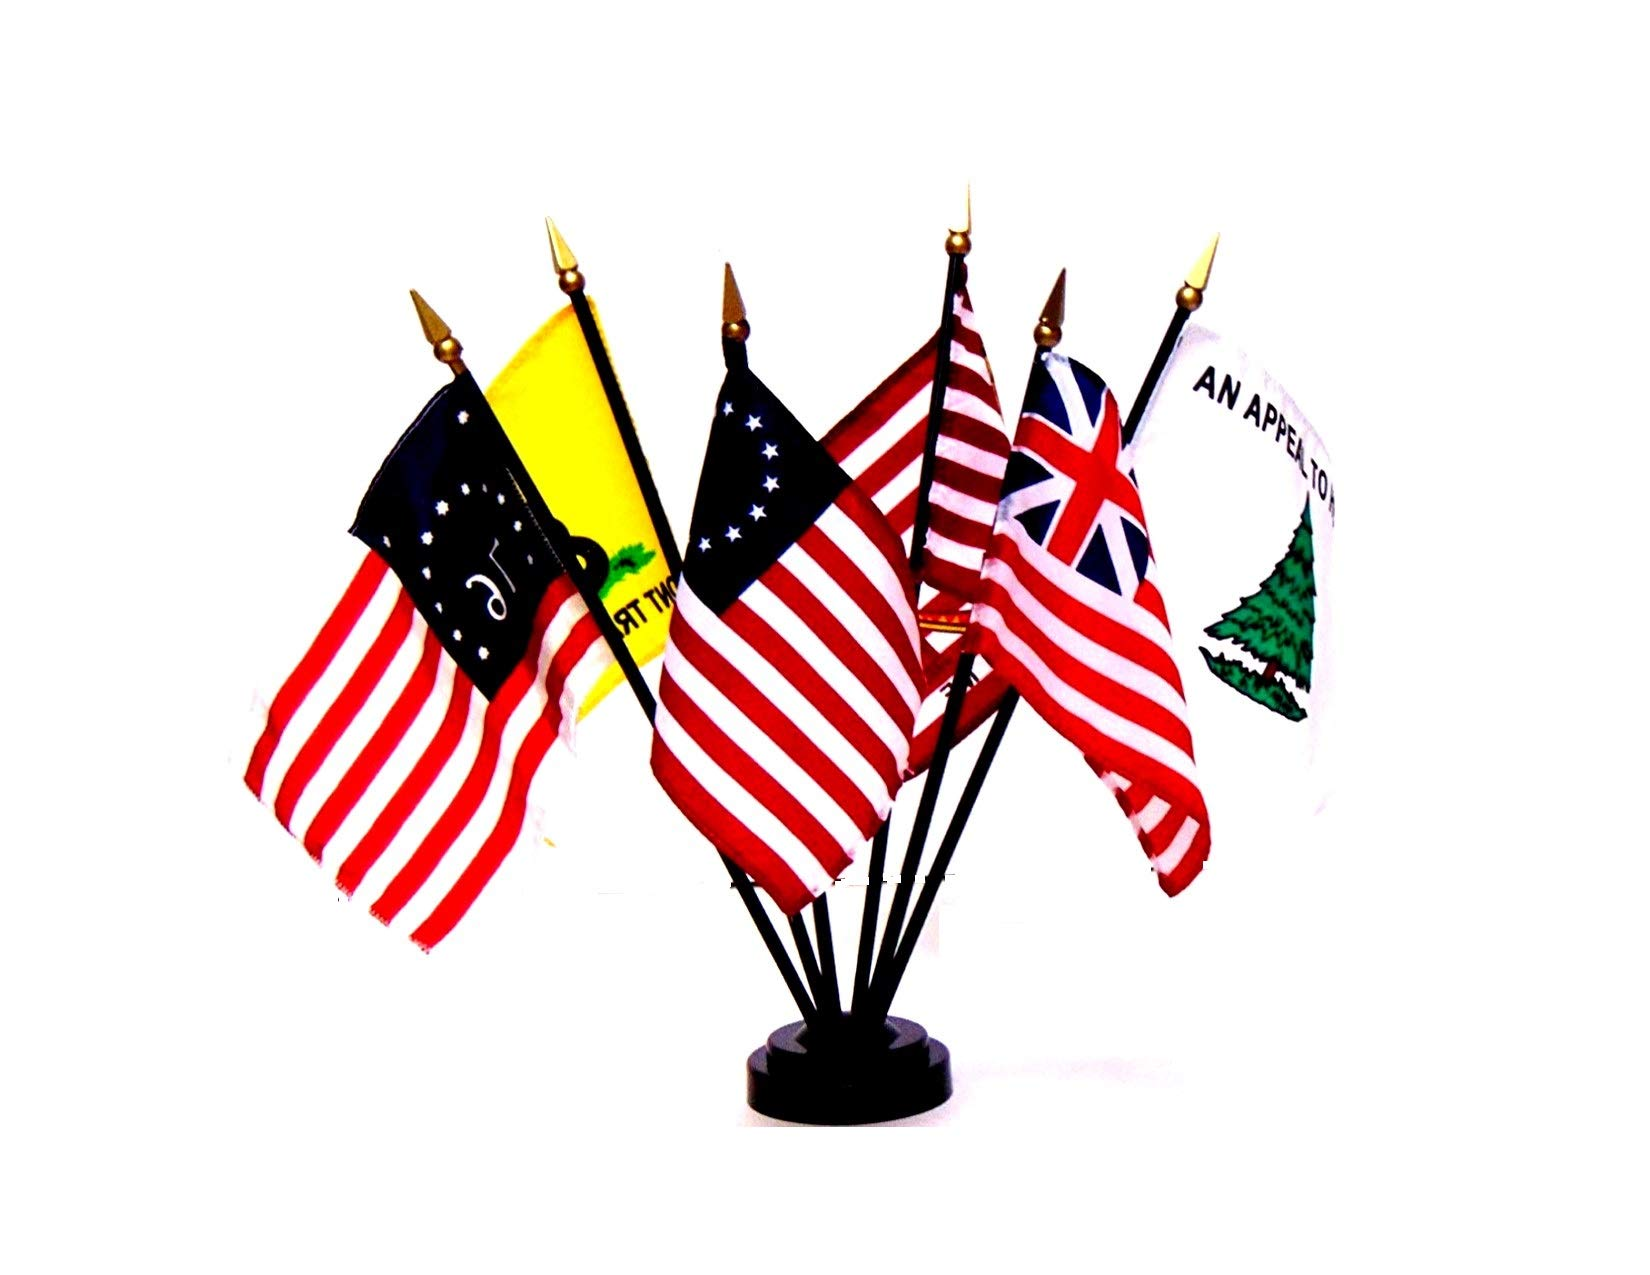 Made in The USA!! US Historical Flag Set - Set of 6 Rayon 4''x6'' Flags with a 6-Hole Base, 4x6 Miniature Historical Desk & Table Flags Set, Small Mini Stick Flags by World Flags Direct (Image #1)